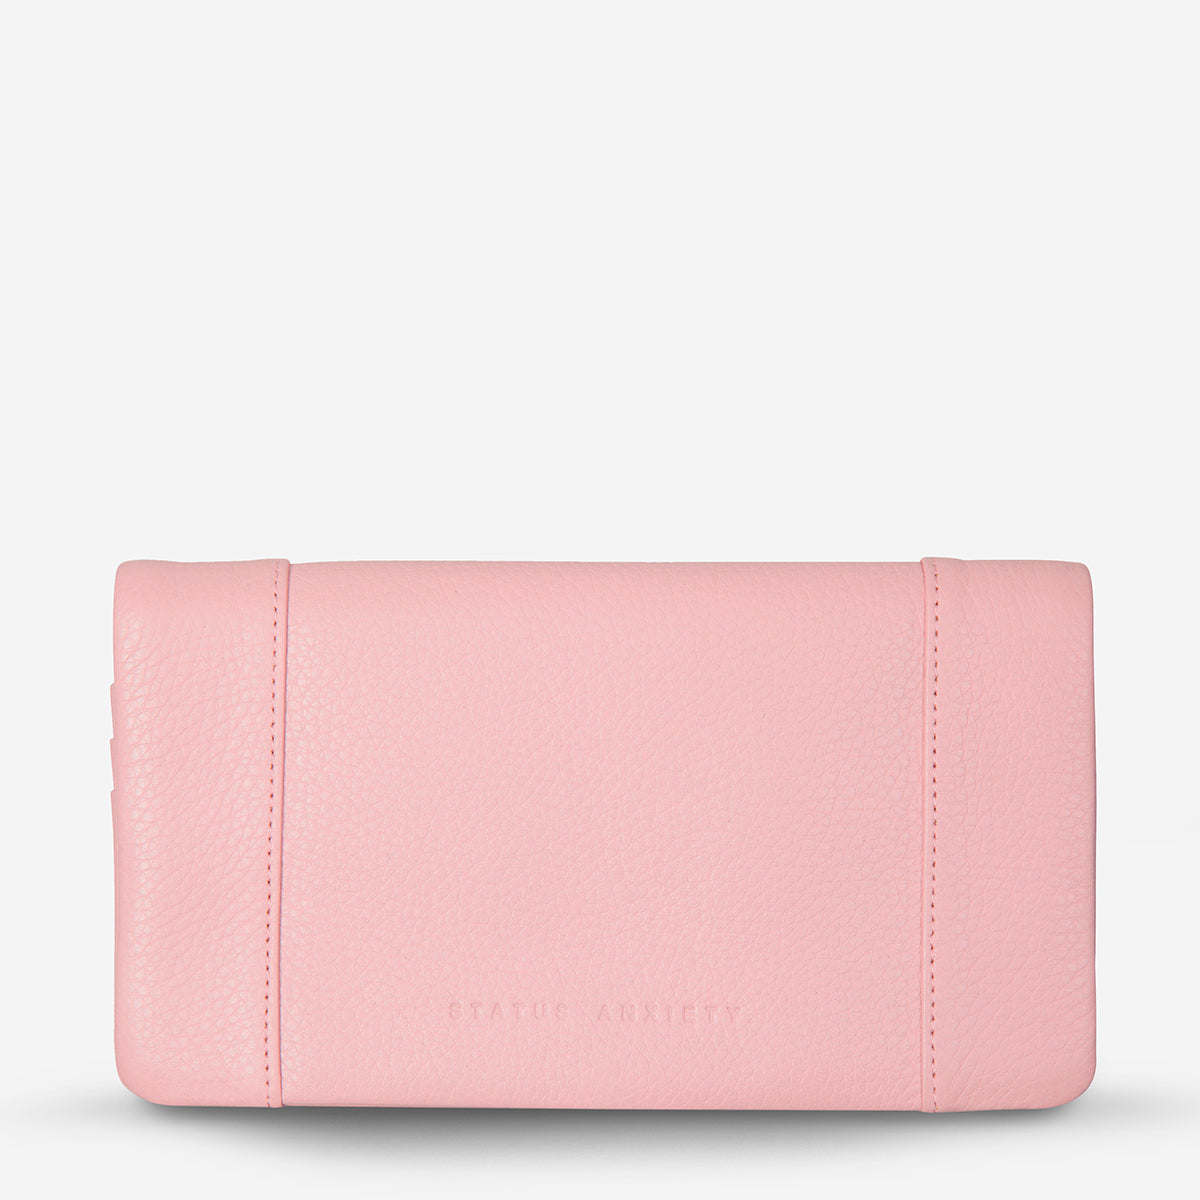 Status Anxiety Some Type Of Love Leather Wallet - Pink